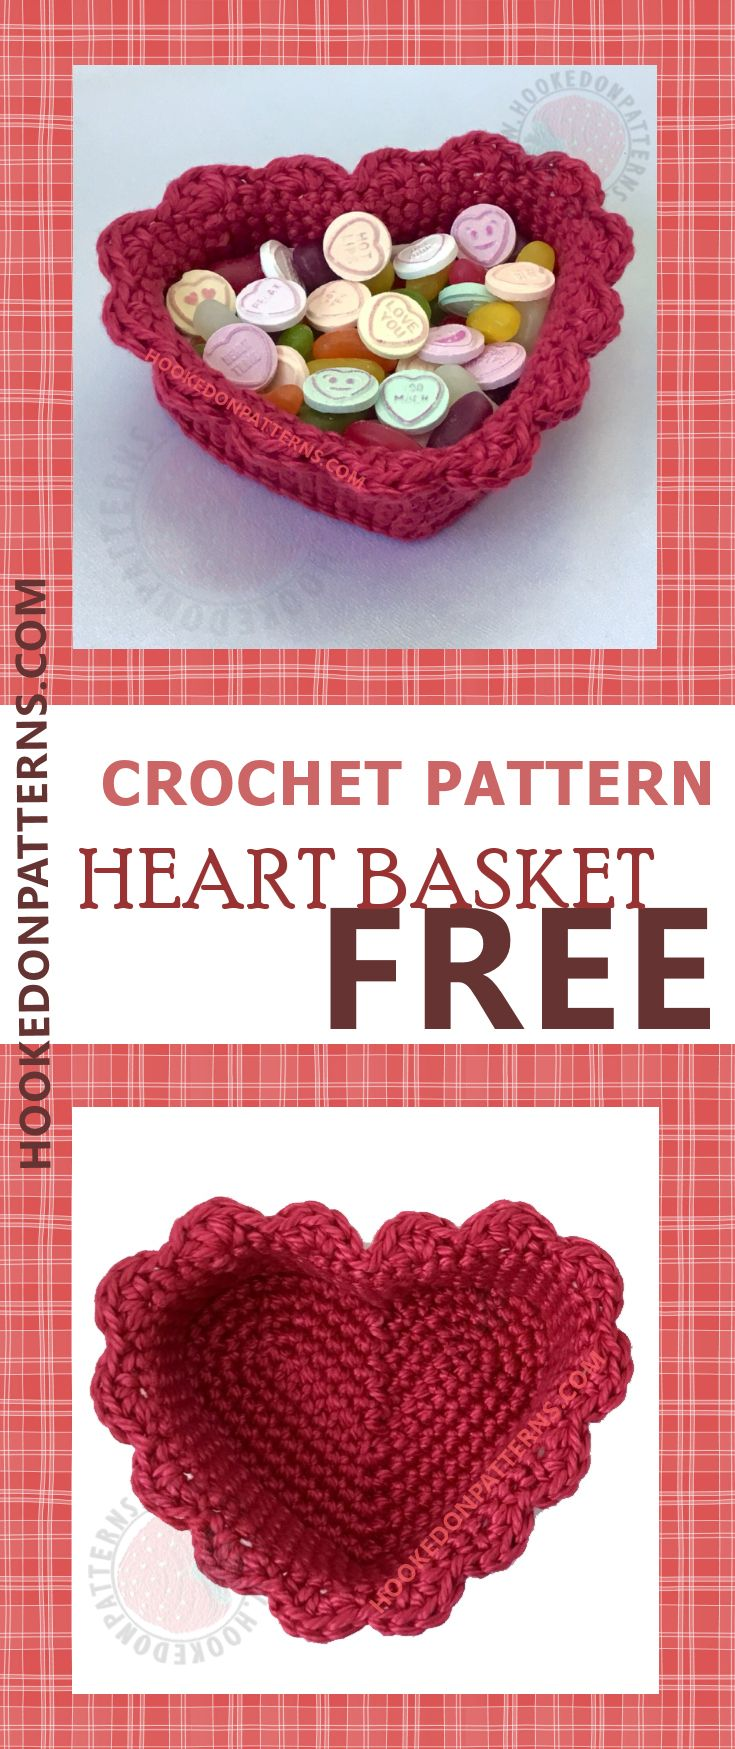 Free crochet patterns for beginners, a frilly heart basket. This heart basket is based on my free heart coasters crochet pattern and both are free to view at hookedonpatterns.com